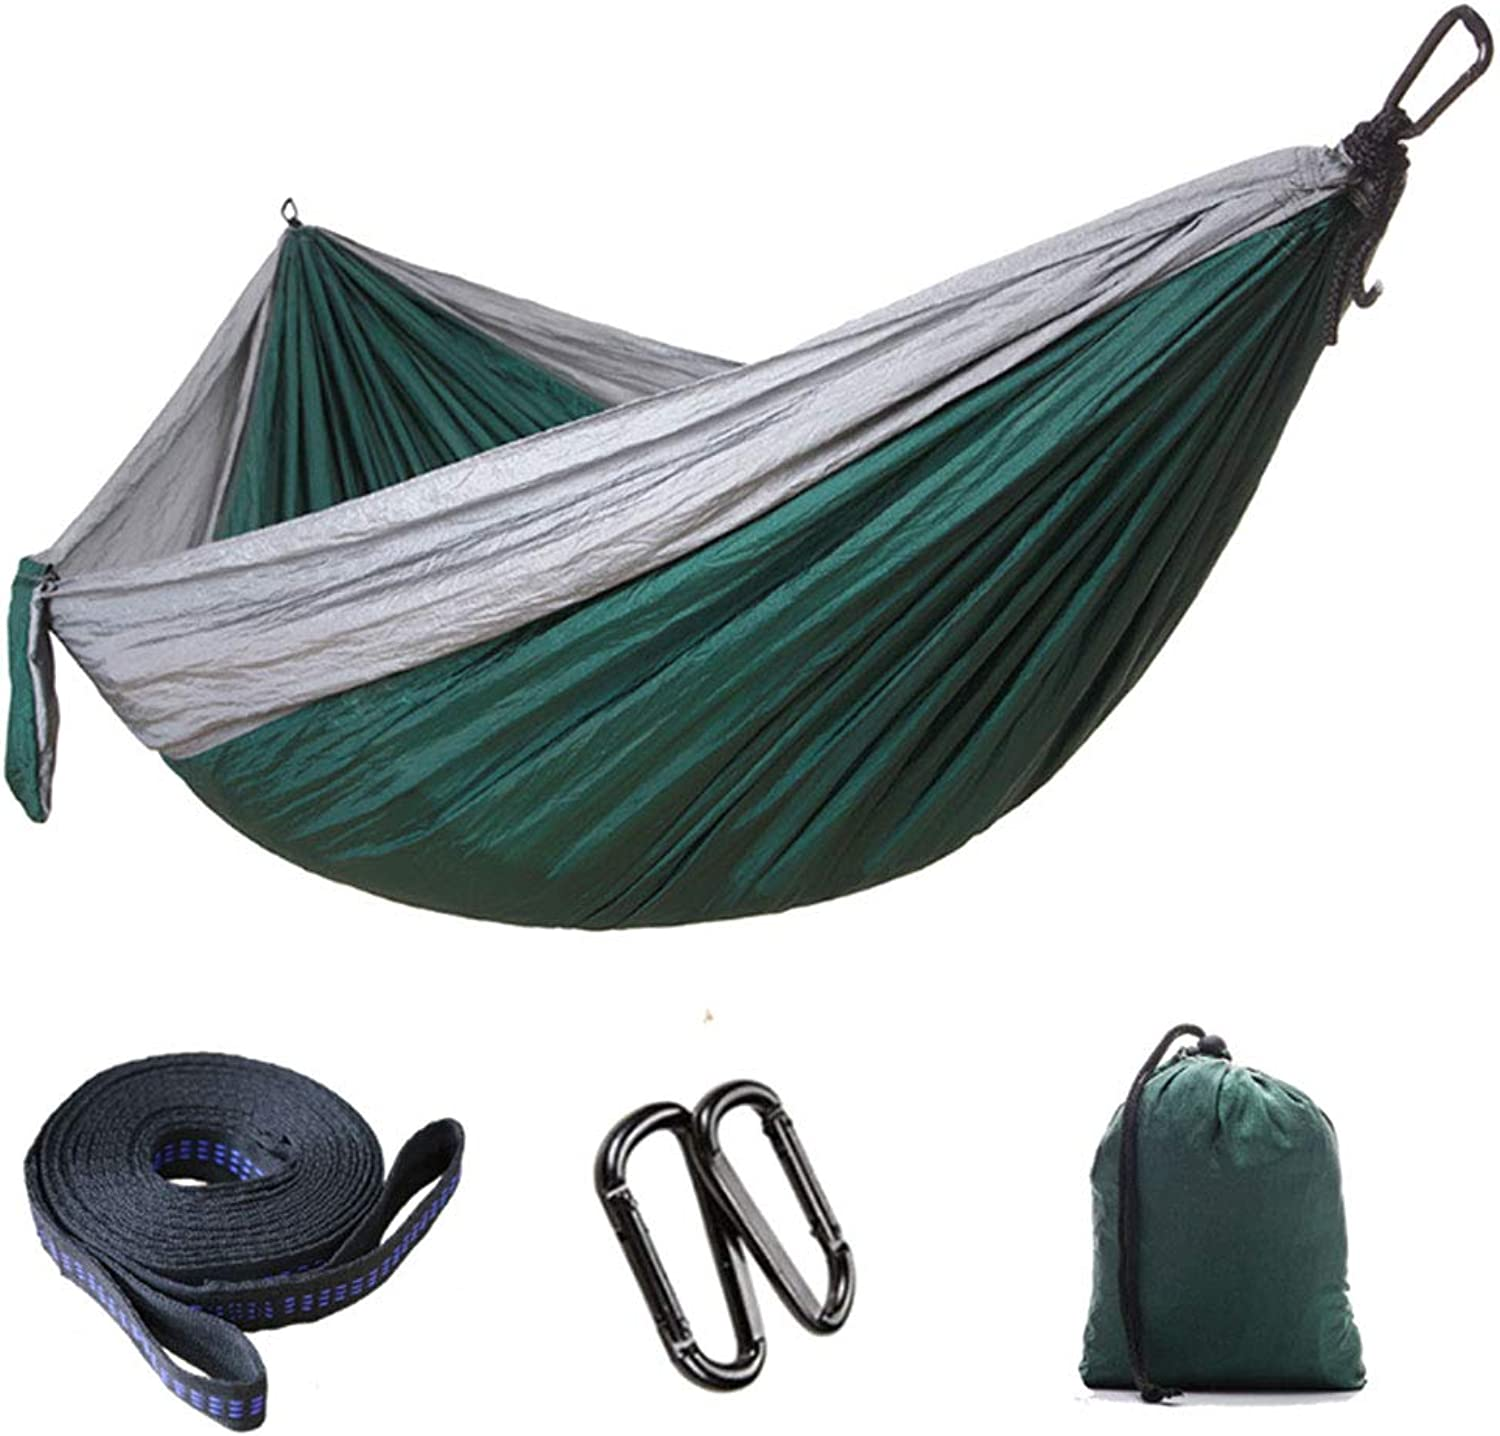 Single Camping Hammock, UltraLight Indoor Outdoor Breathable Travel Portable Nylon Parachute Lightweight Hammock with Tree Straps and Storage Bag for Backpacking Hiking Patio Yard Garden